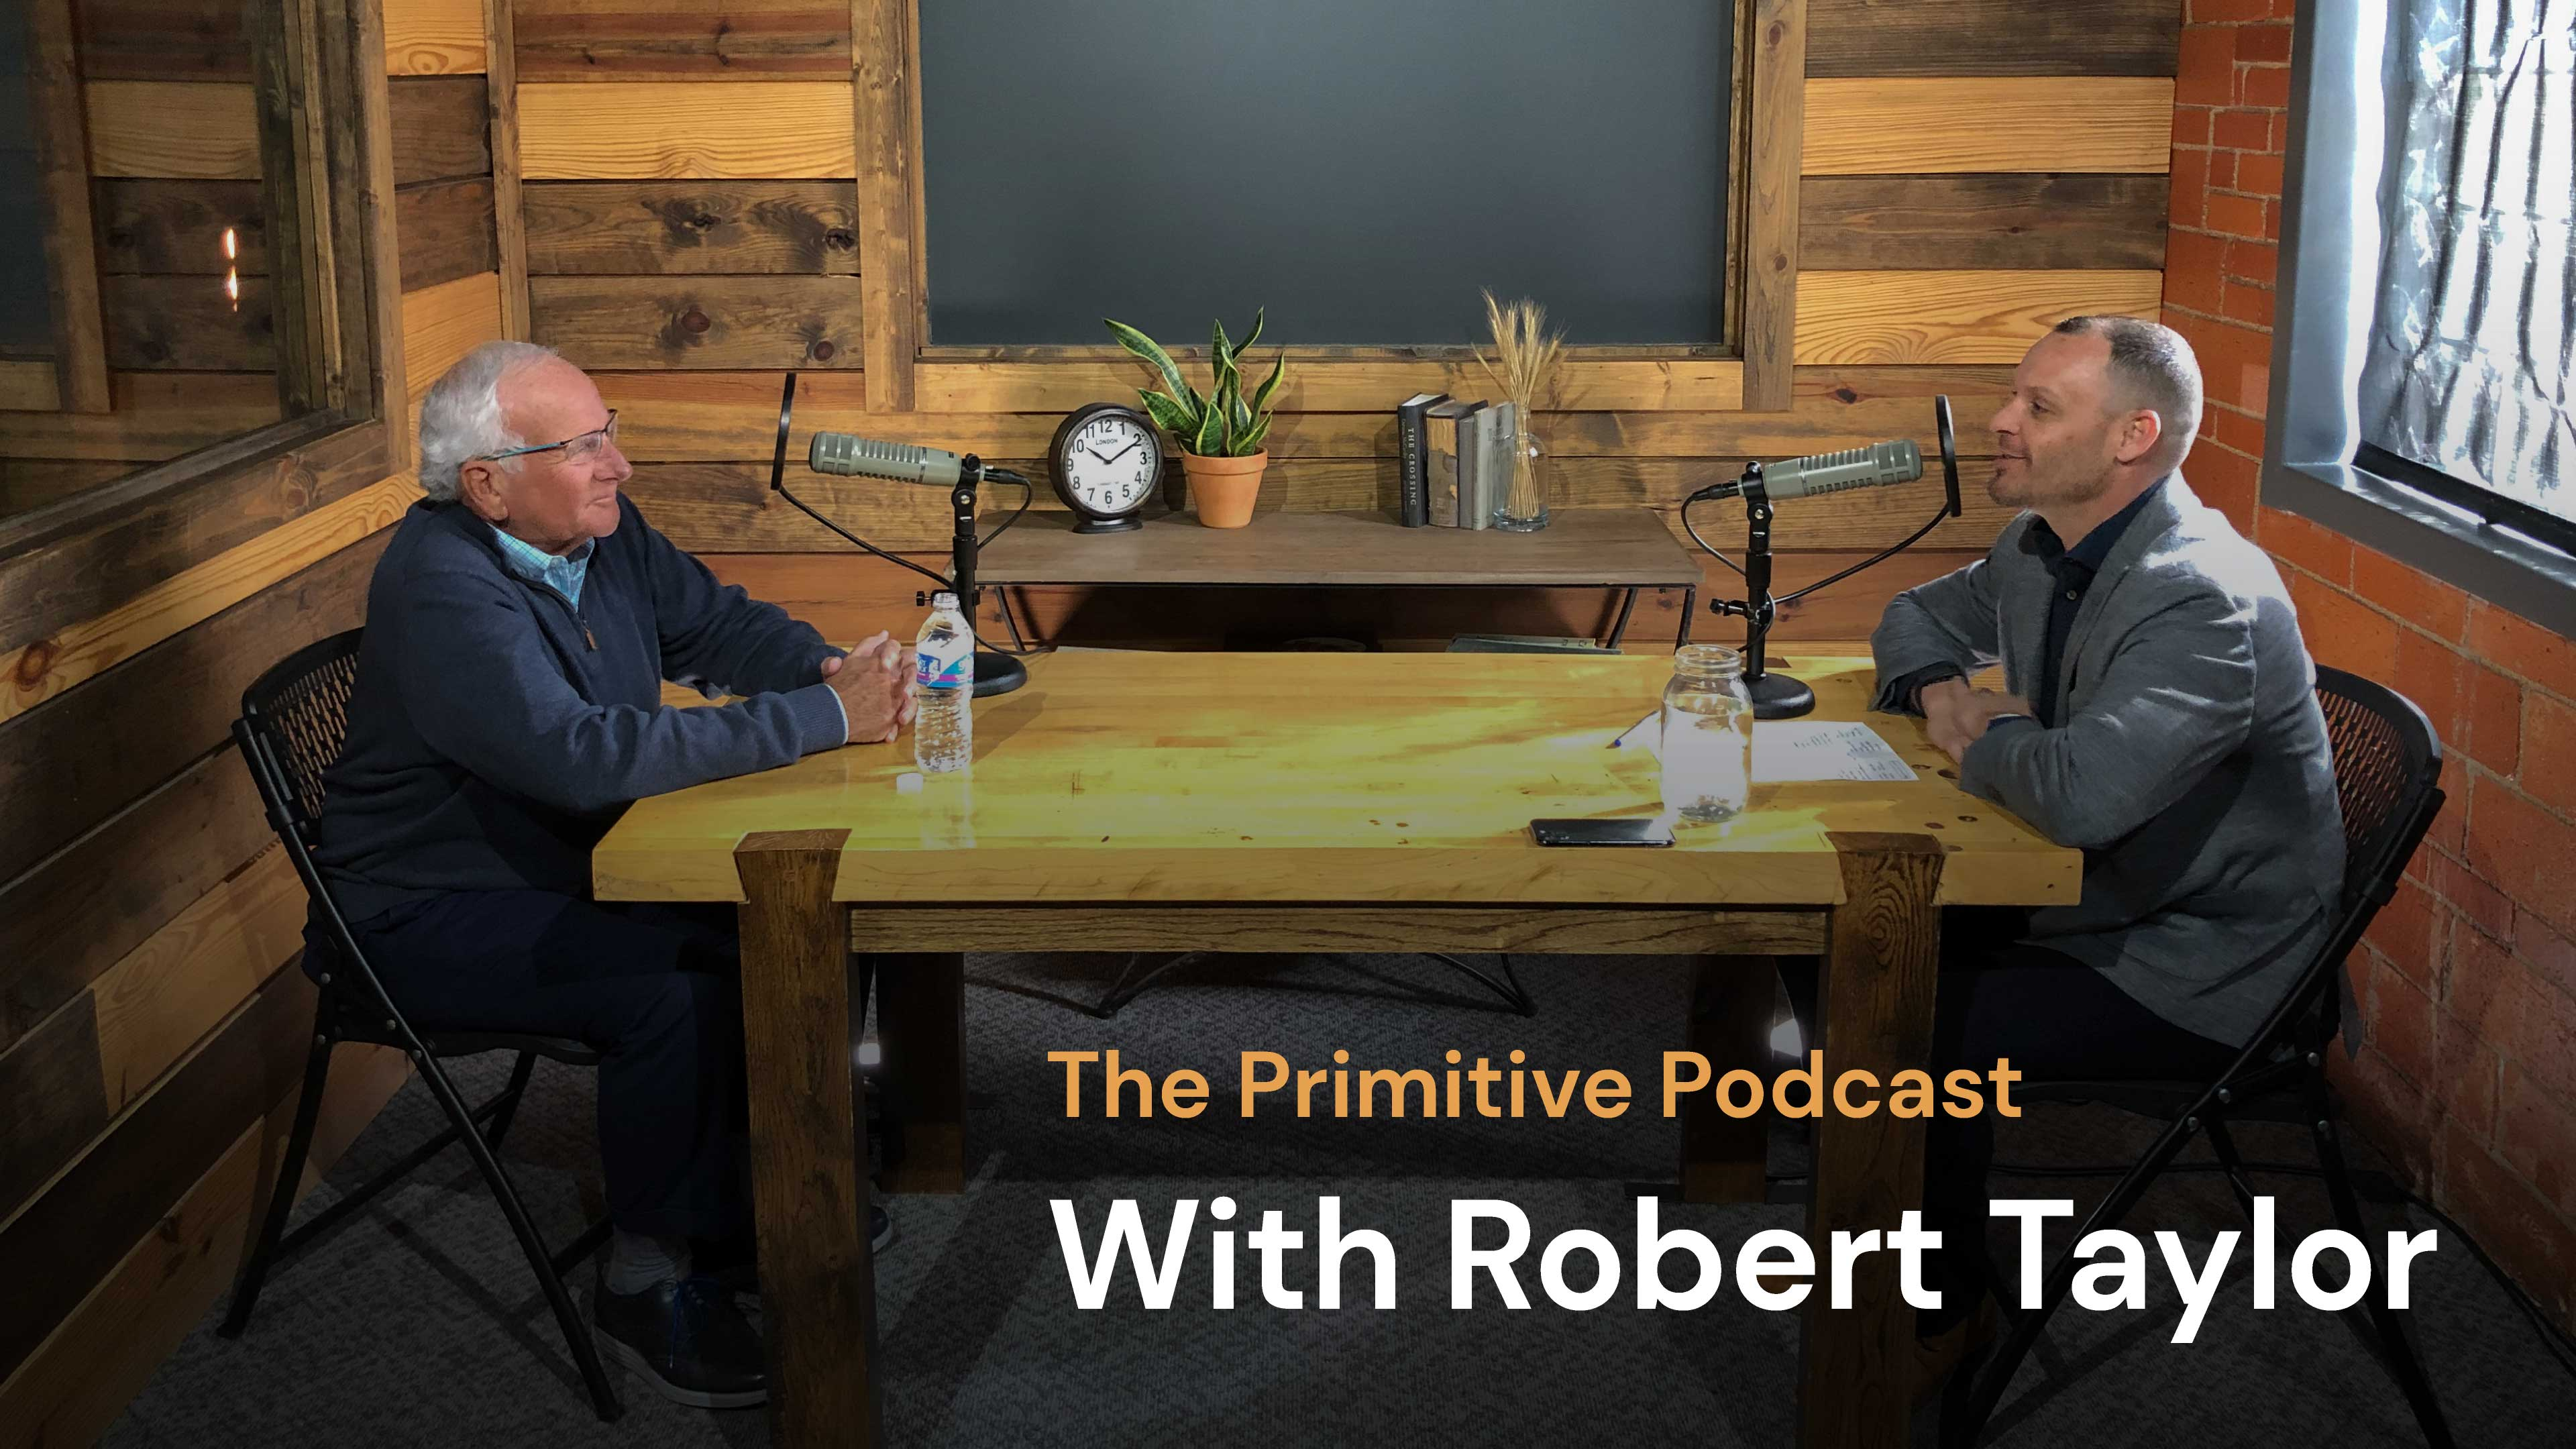 The Primitive Podcast: Robert Taylor